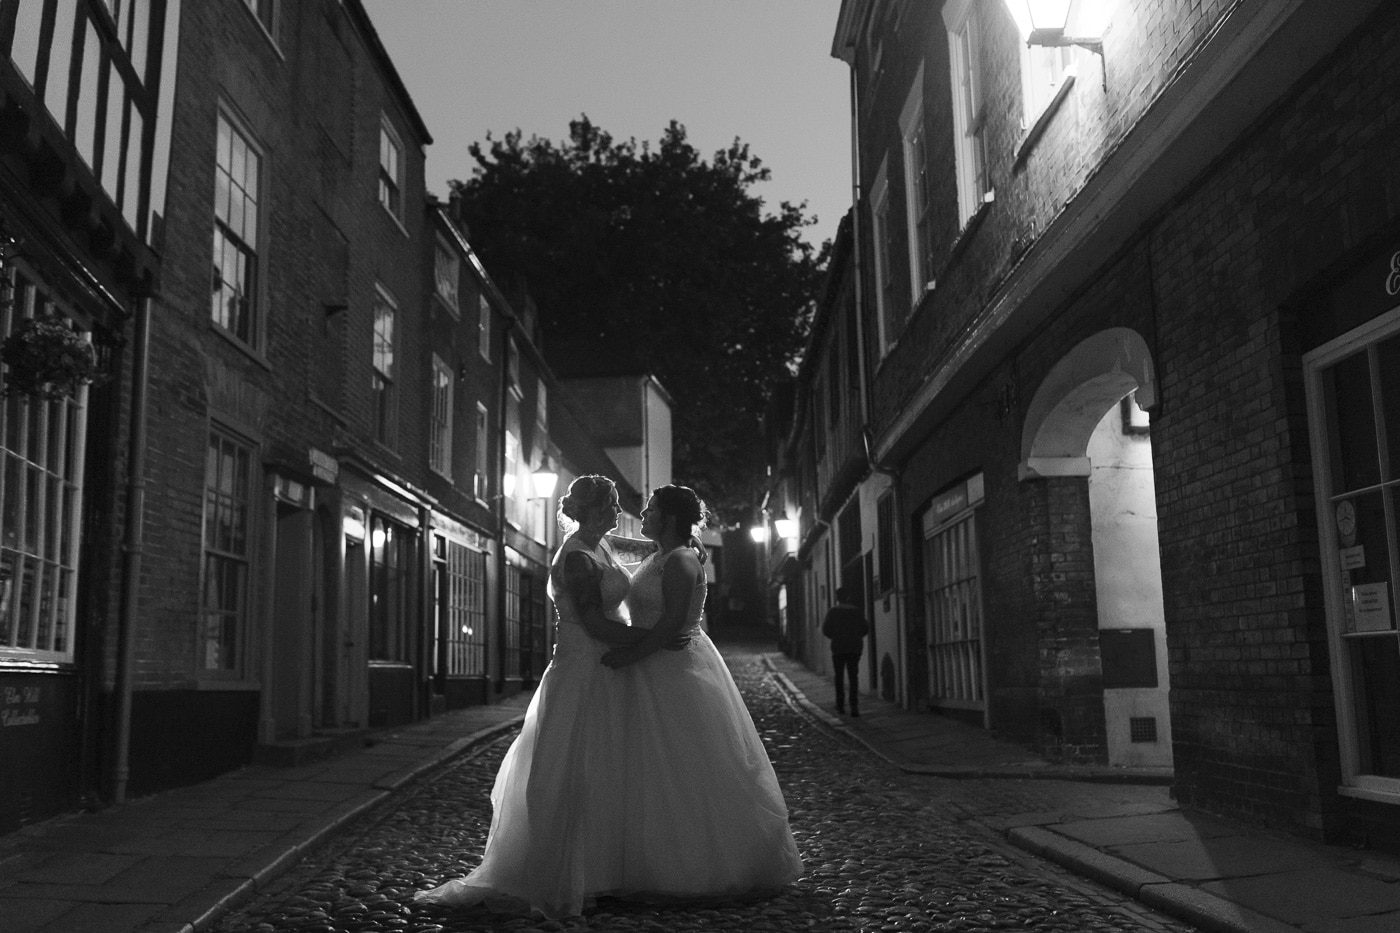 Backlit brides in the dark for wedding photography by Joshua Wyborn